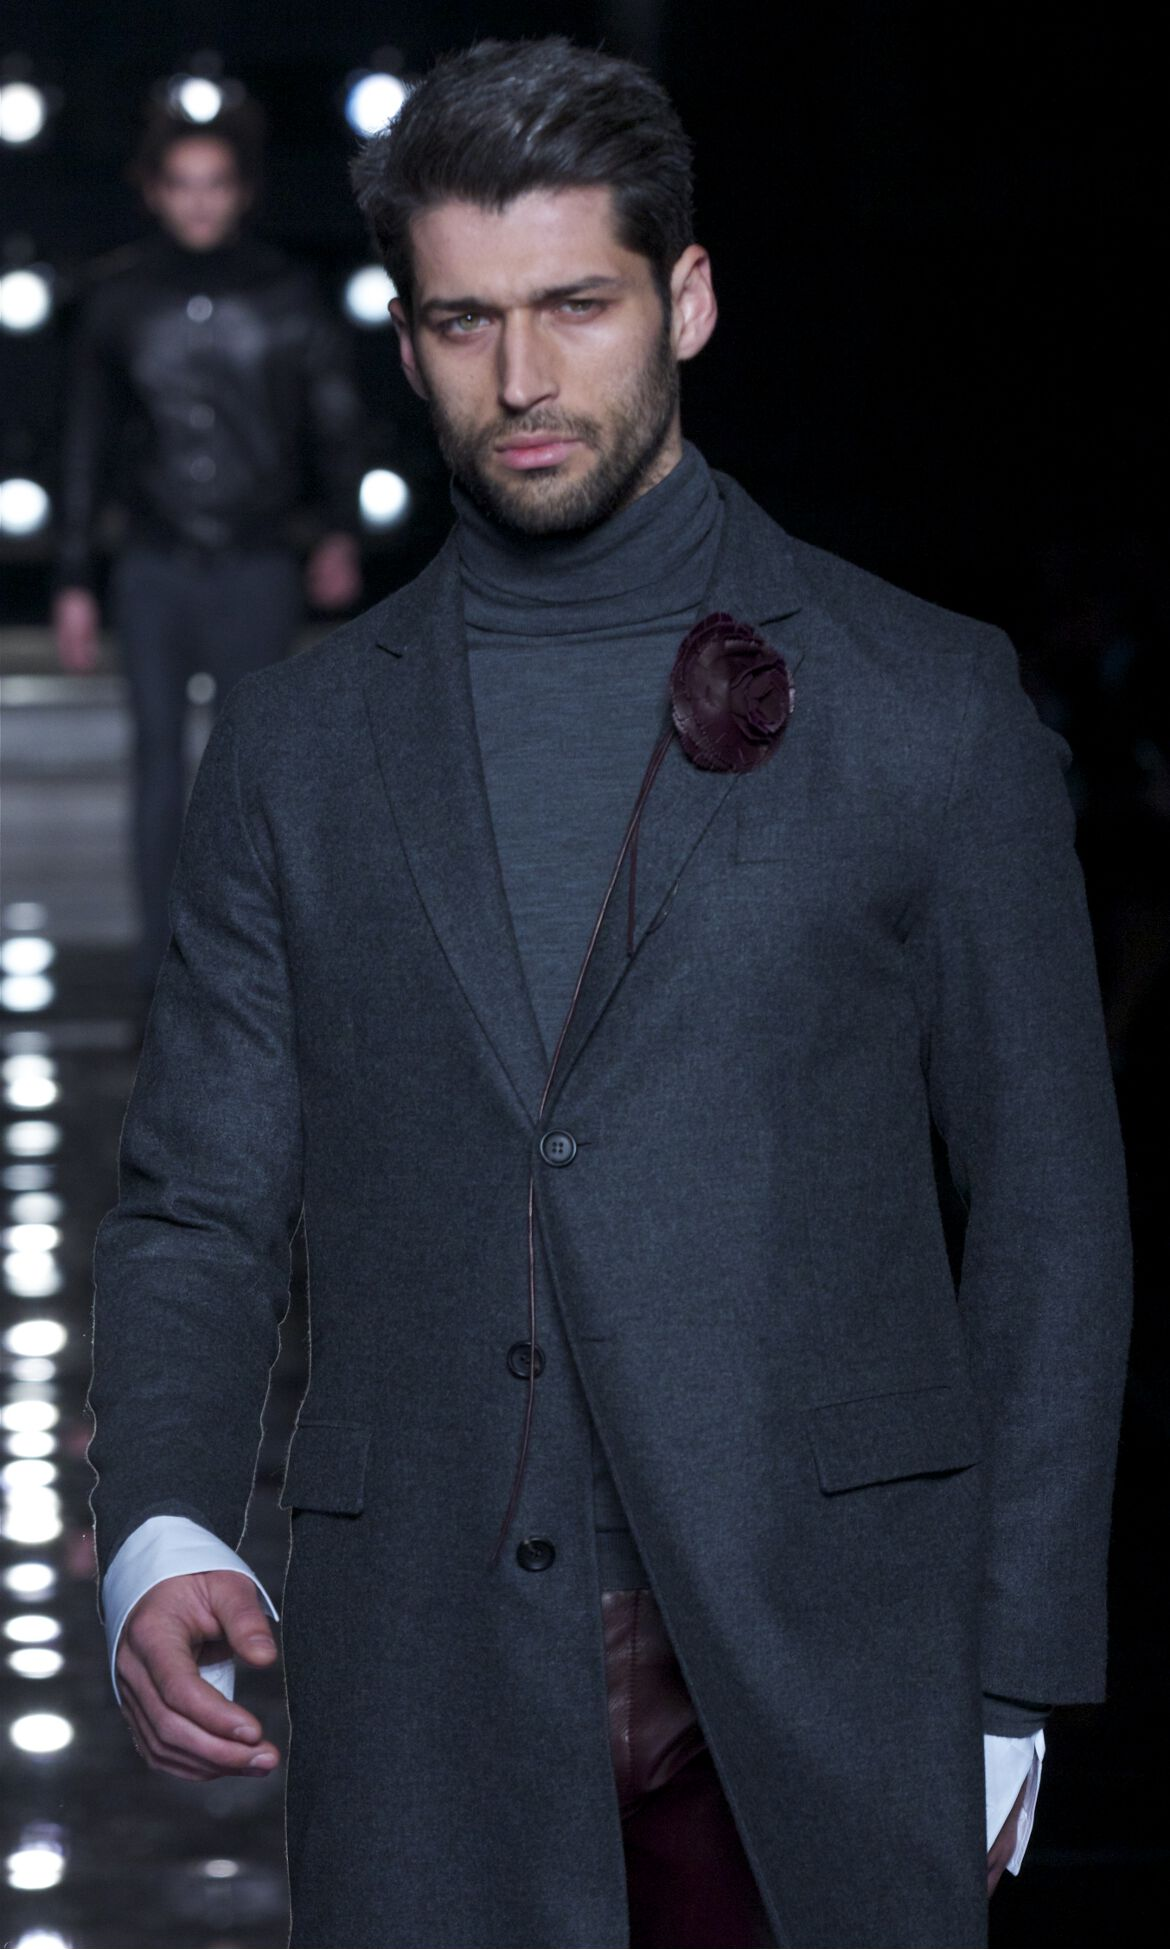 Ermanno Scervino Fashion Show Winter 2013 Model